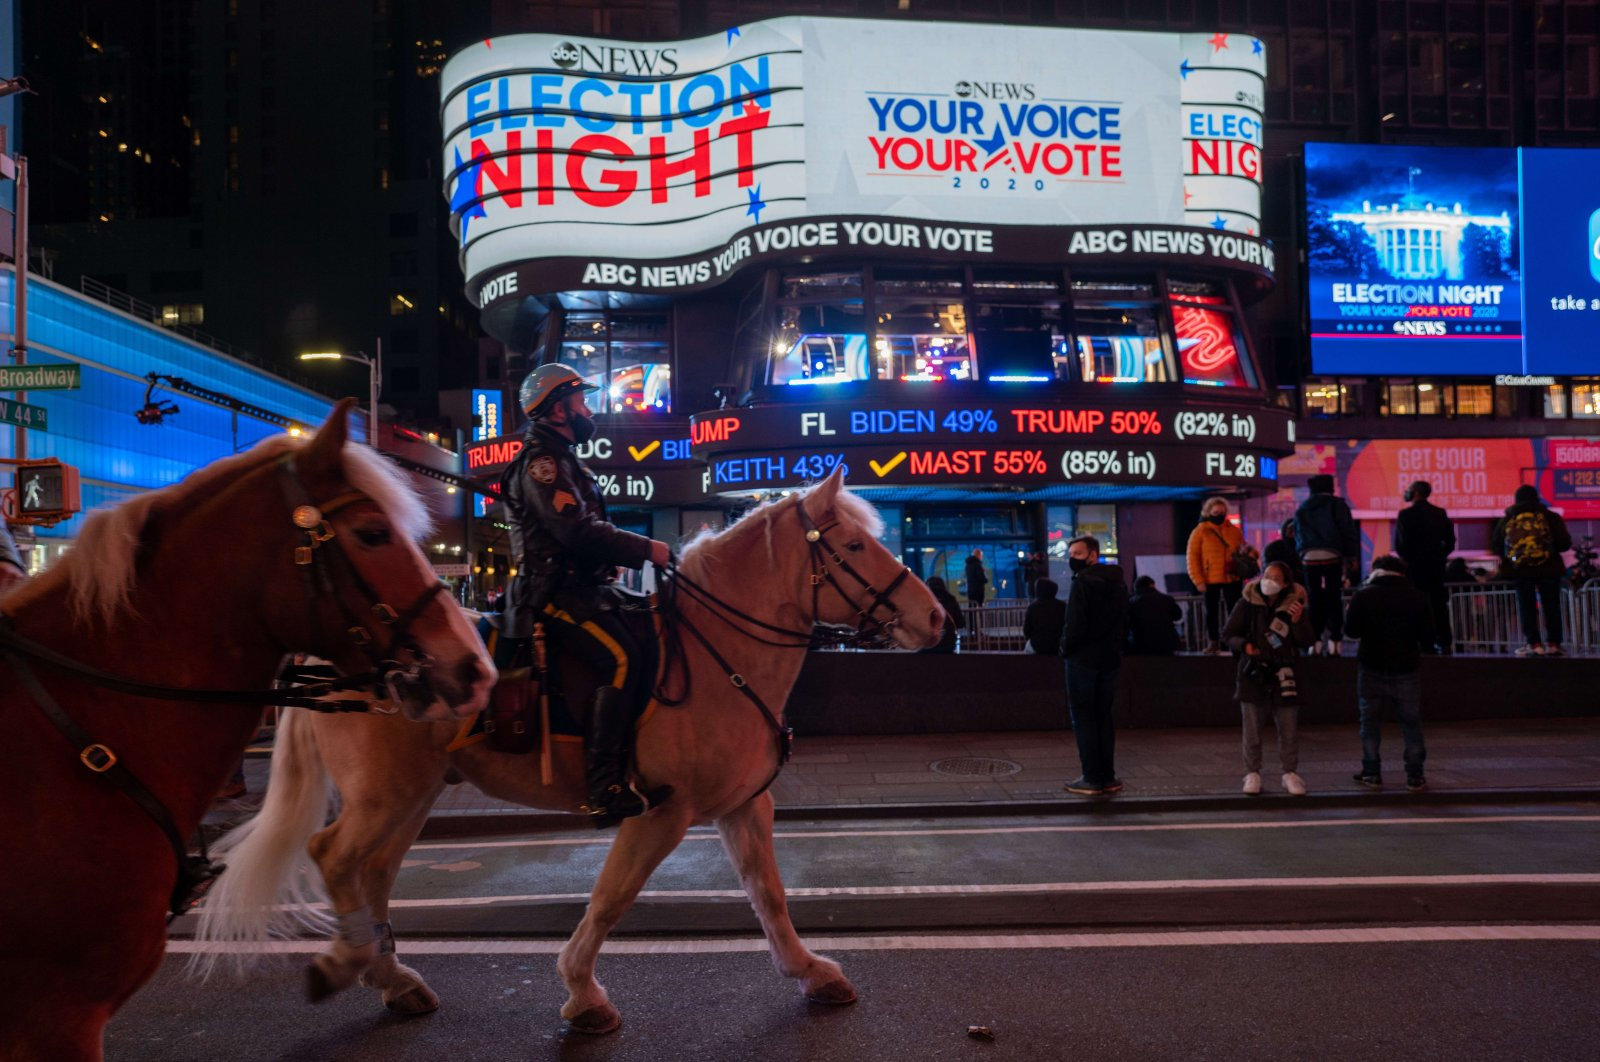 People gather in Times Square as they await election results on November 3, 2020 in New York City. (AFP Photo)